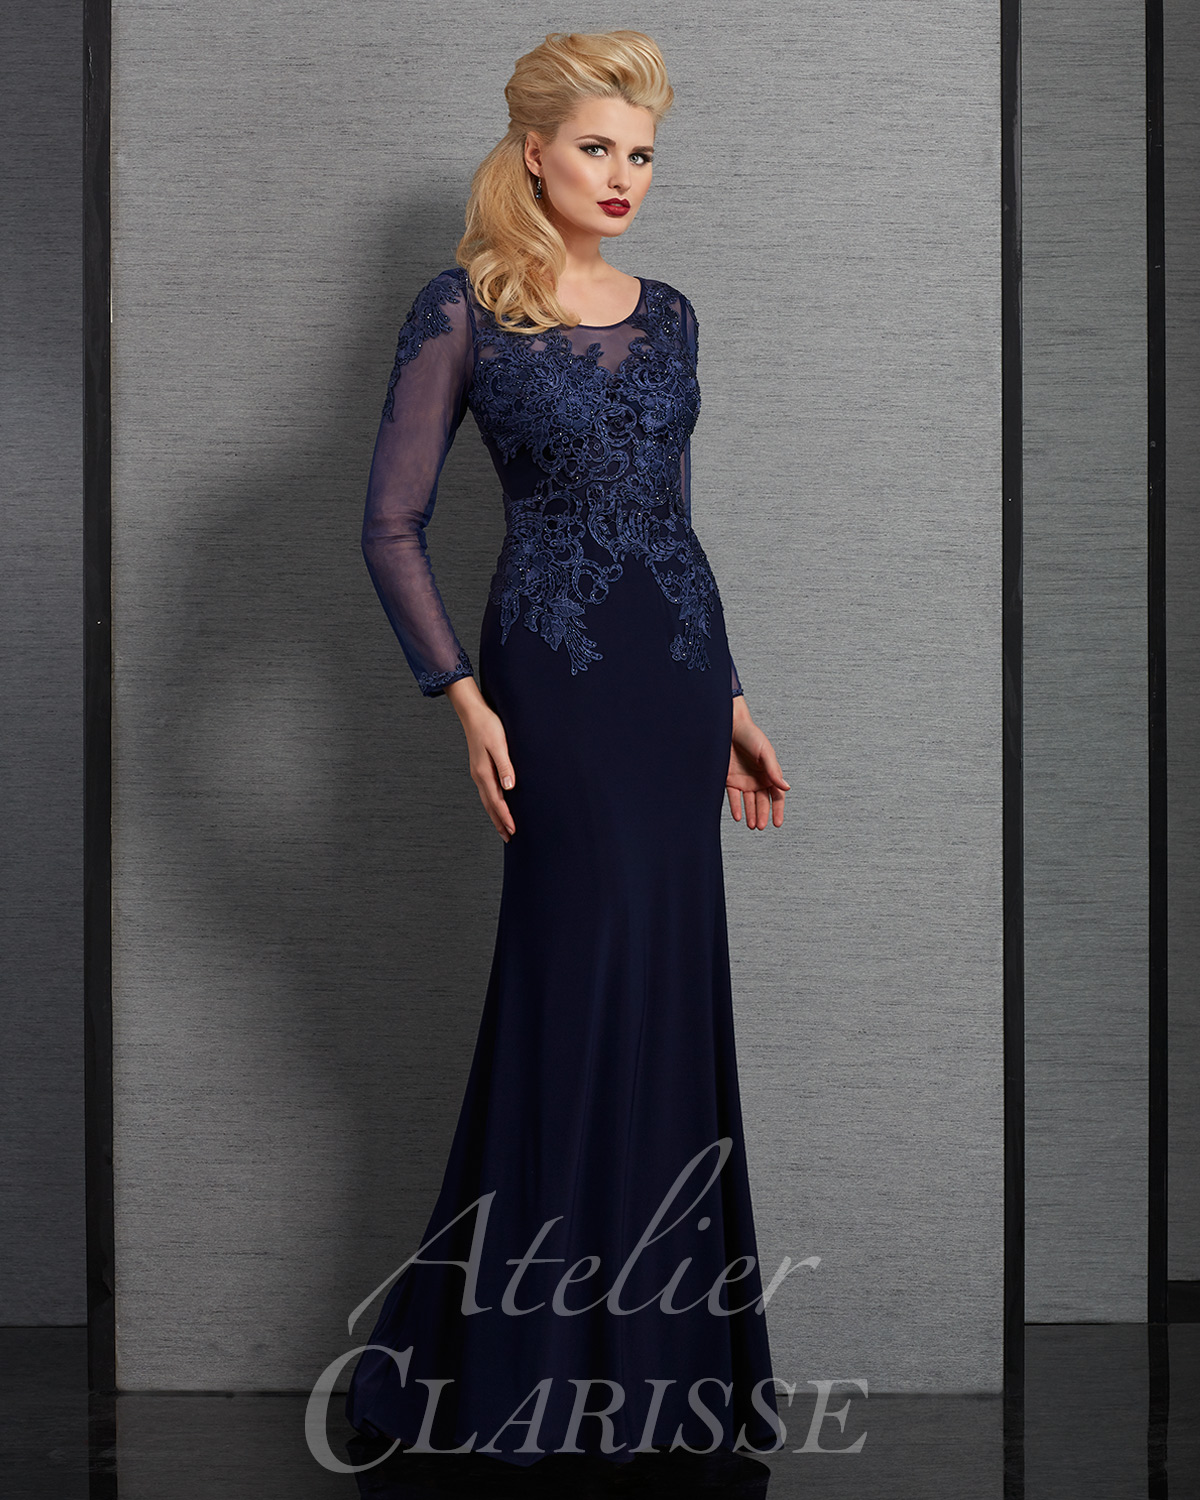 00d72aaae9231 atelier-clarisse-long-sleeve-special-occasion-dress-6333-2.jpg